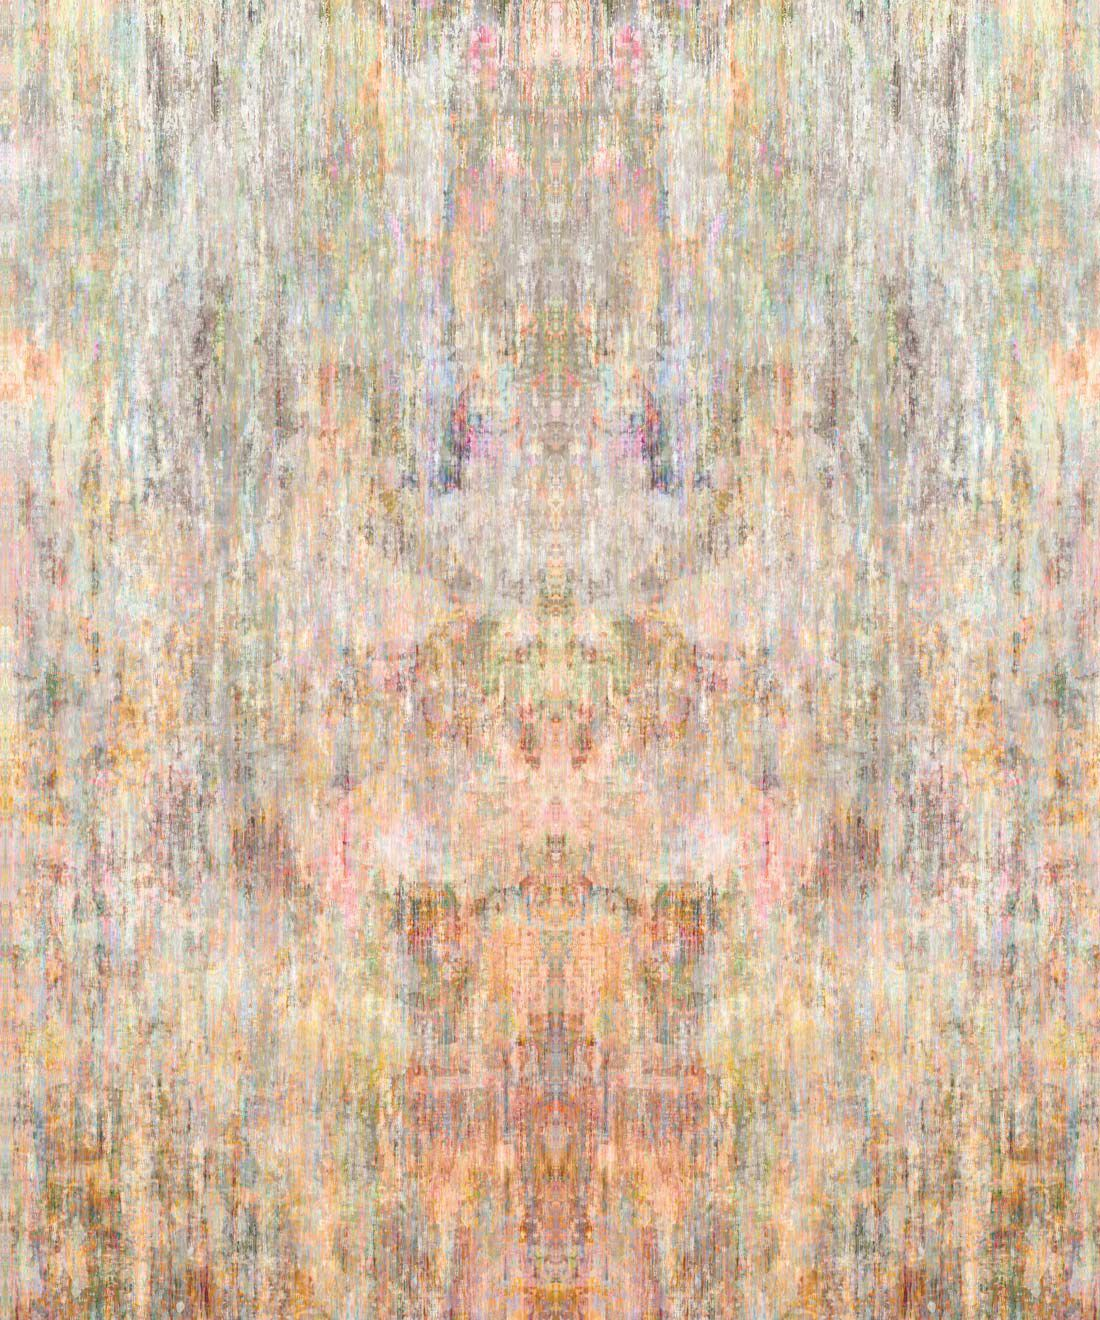 Patina Wallpaper by Simcox • Color Light • Abstract Wallpaper • swatch